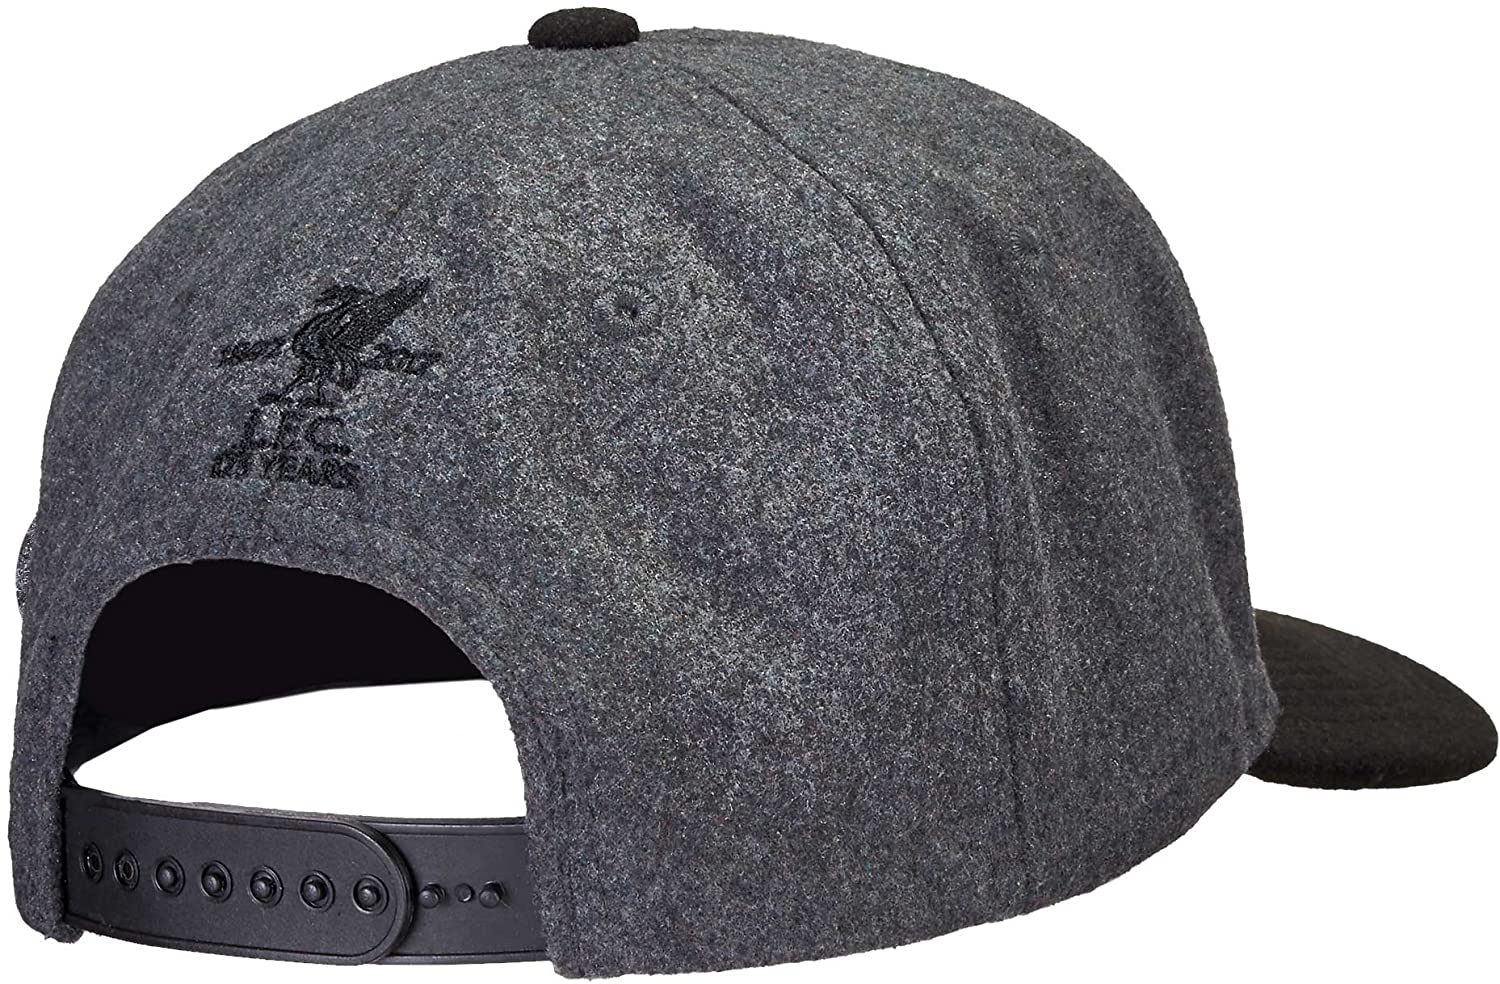 Amazon.com : New Balance Liverpool FC ANNIVERSARY SNAPBACK CAP [Black] (OS) : Sports & Outdoors